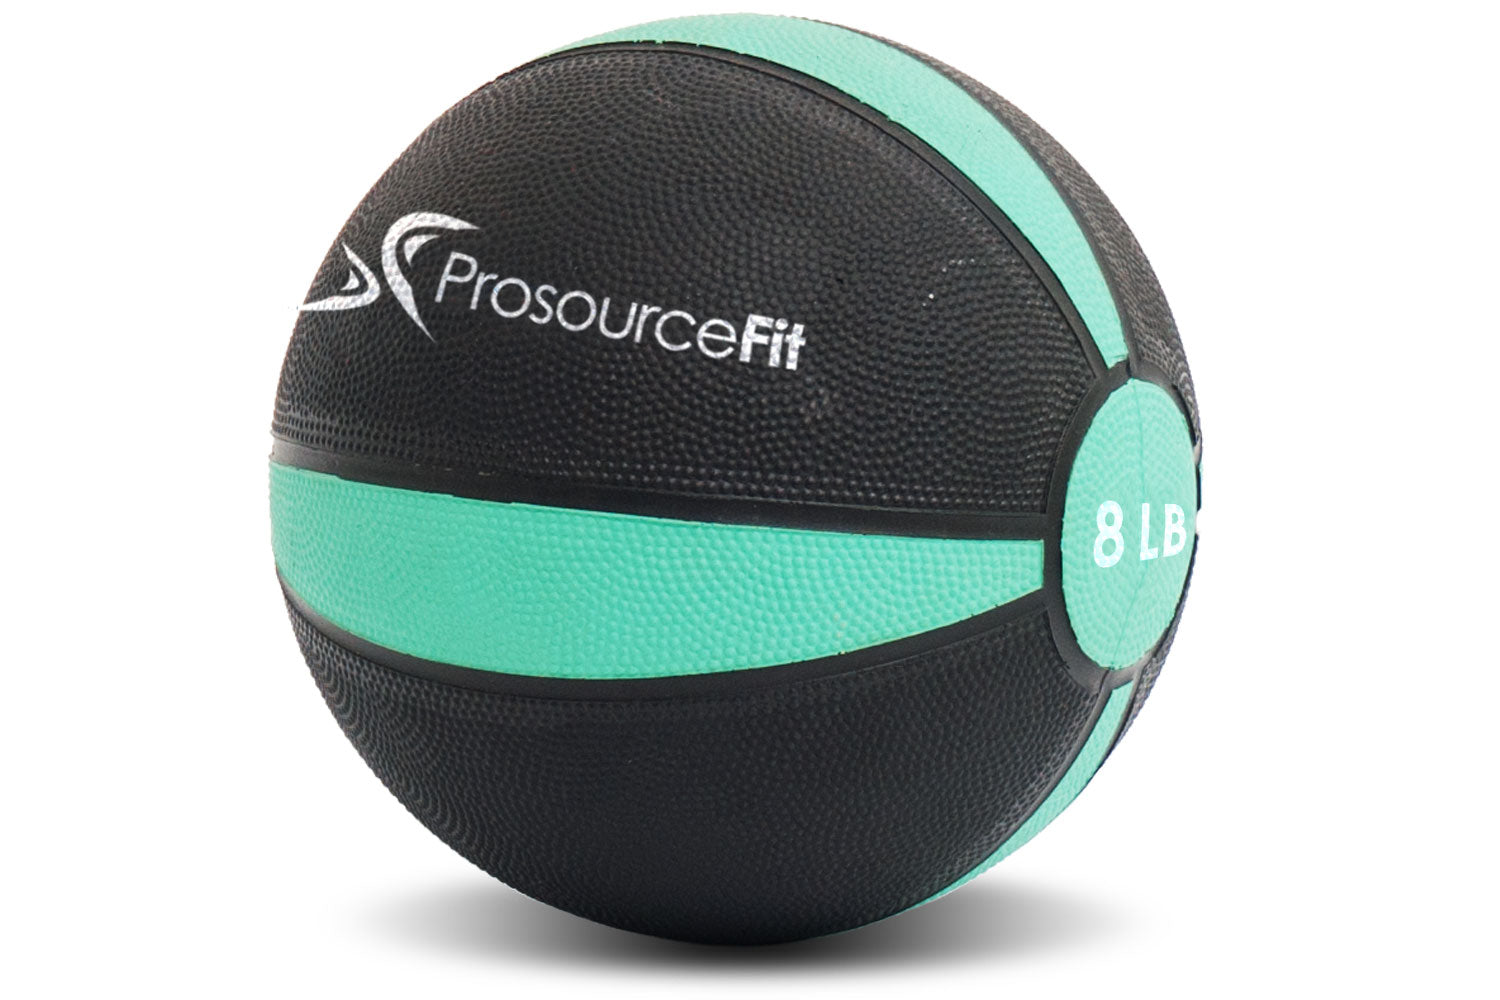 8 lb Rubber Medicine Ball